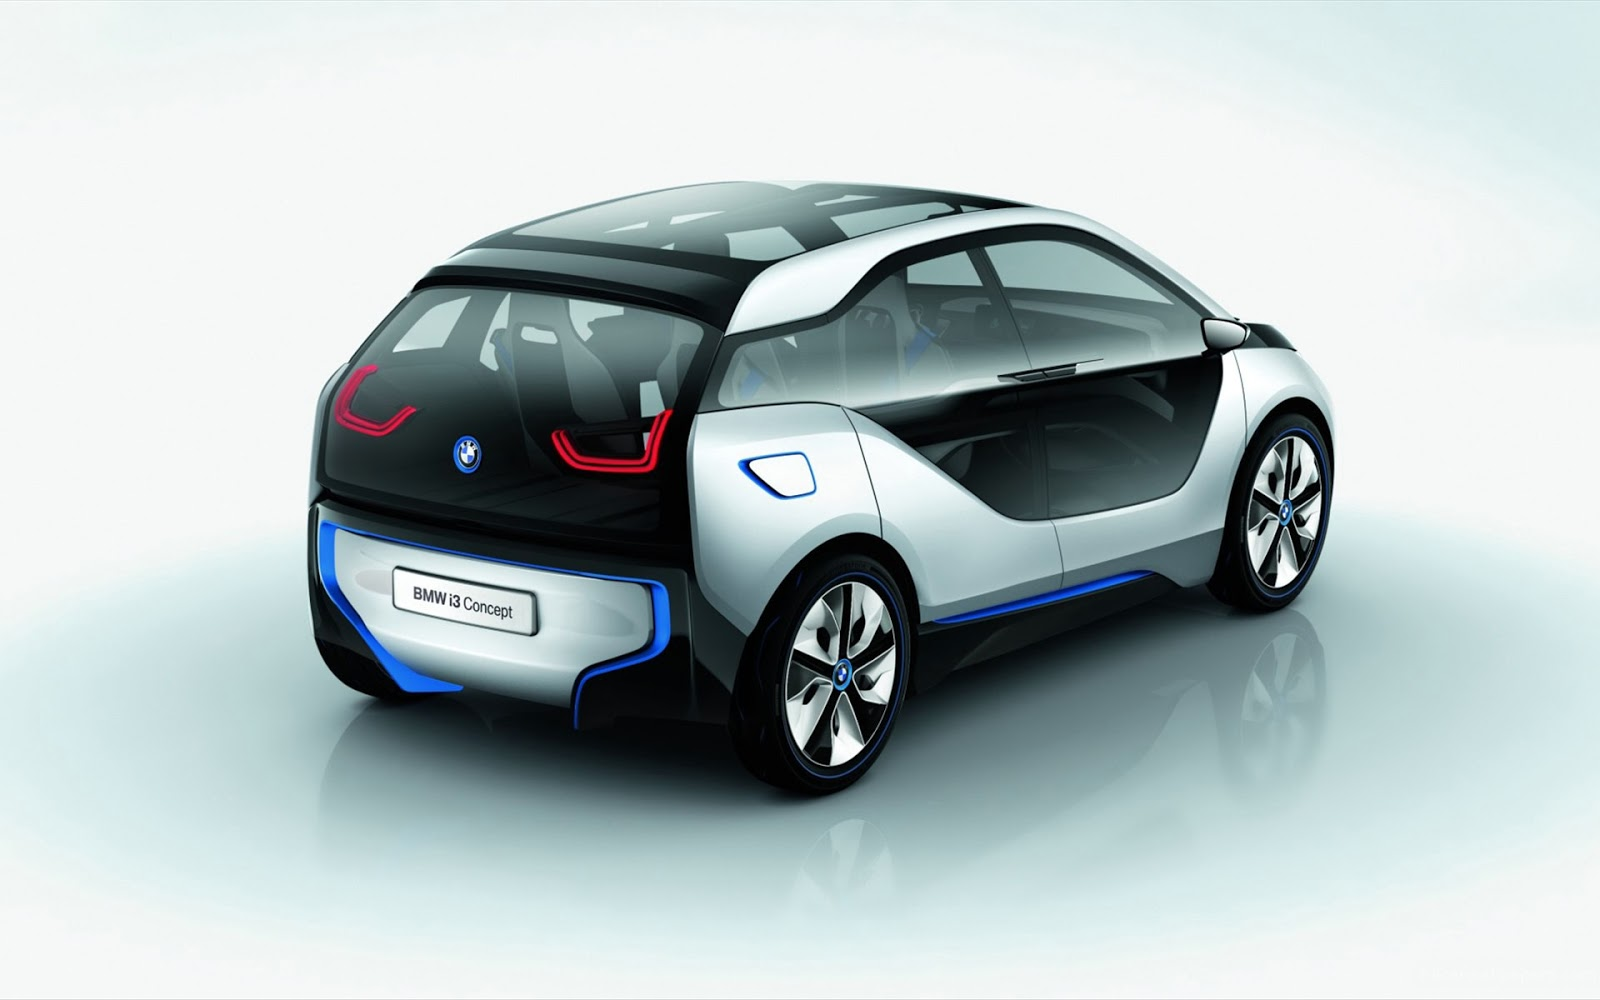 http://3.bp.blogspot.com/-UBwiNQpsrew/ULddpZGaZCI/AAAAAAAAAtQ/P1-OpTgKPX4/s1600/Download+2012+BMW+i3+Concept+4+HD+Widescreen+car+wallpaper.jpg